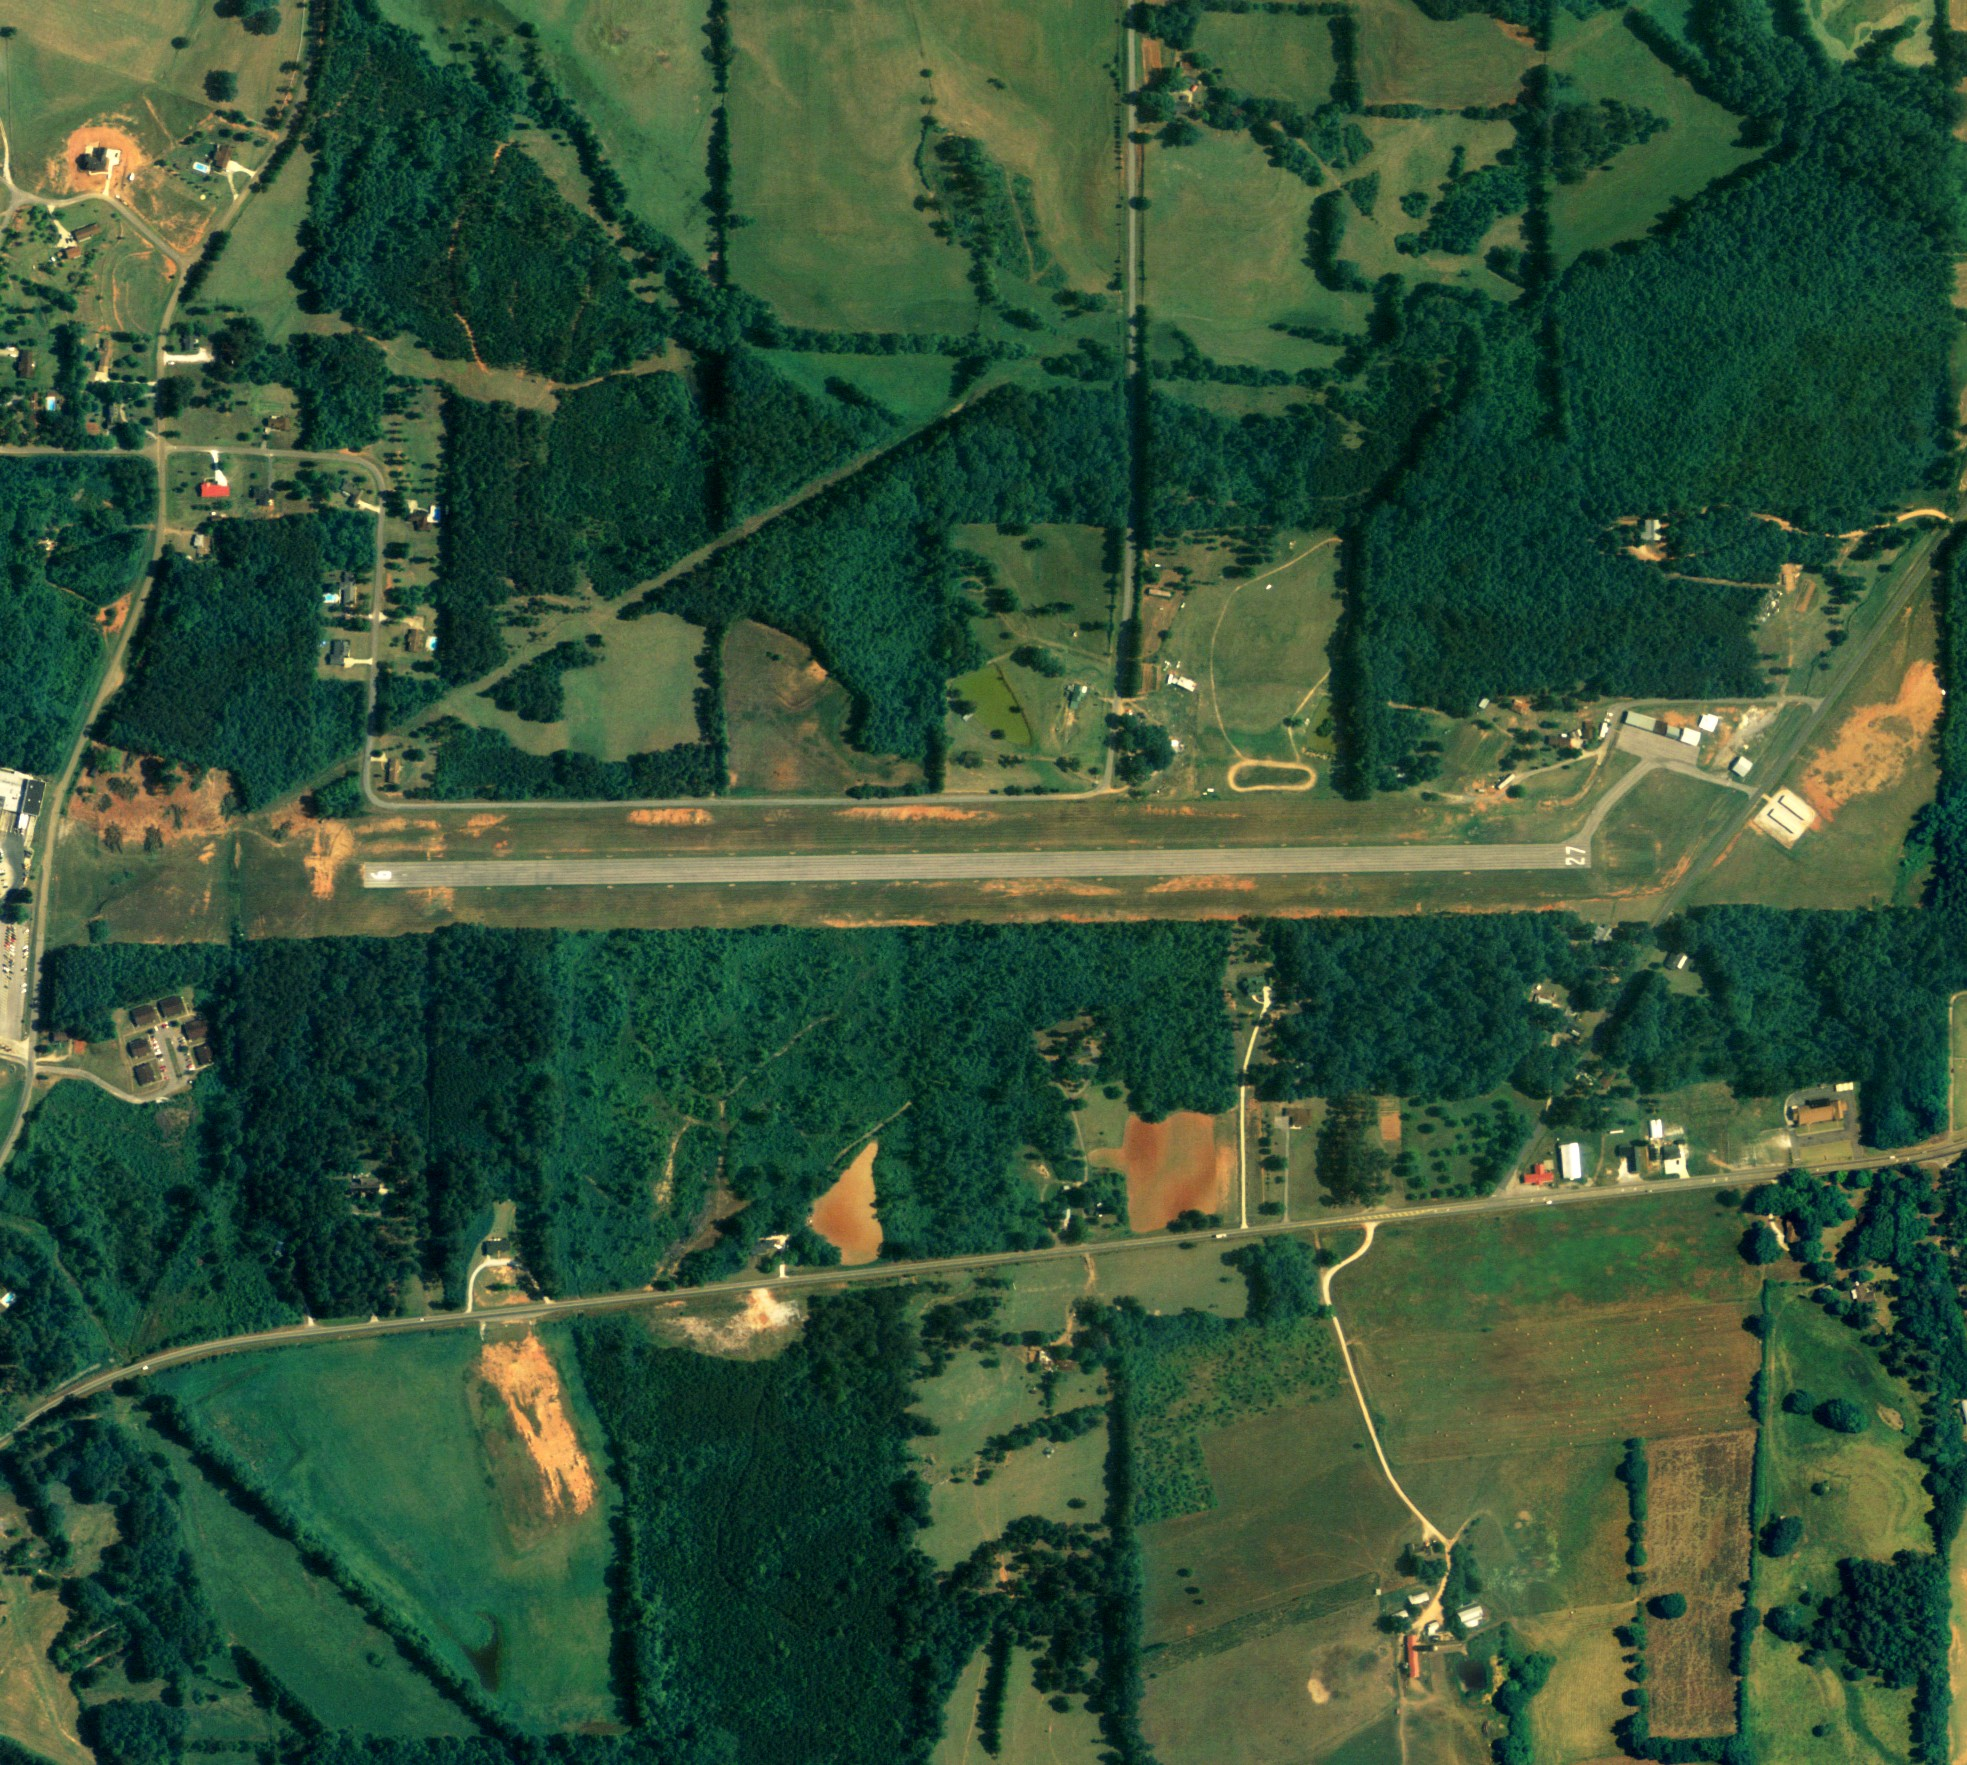 Fly Into Ashland Lineville Airport A Clay County Alabama - Alabama airports